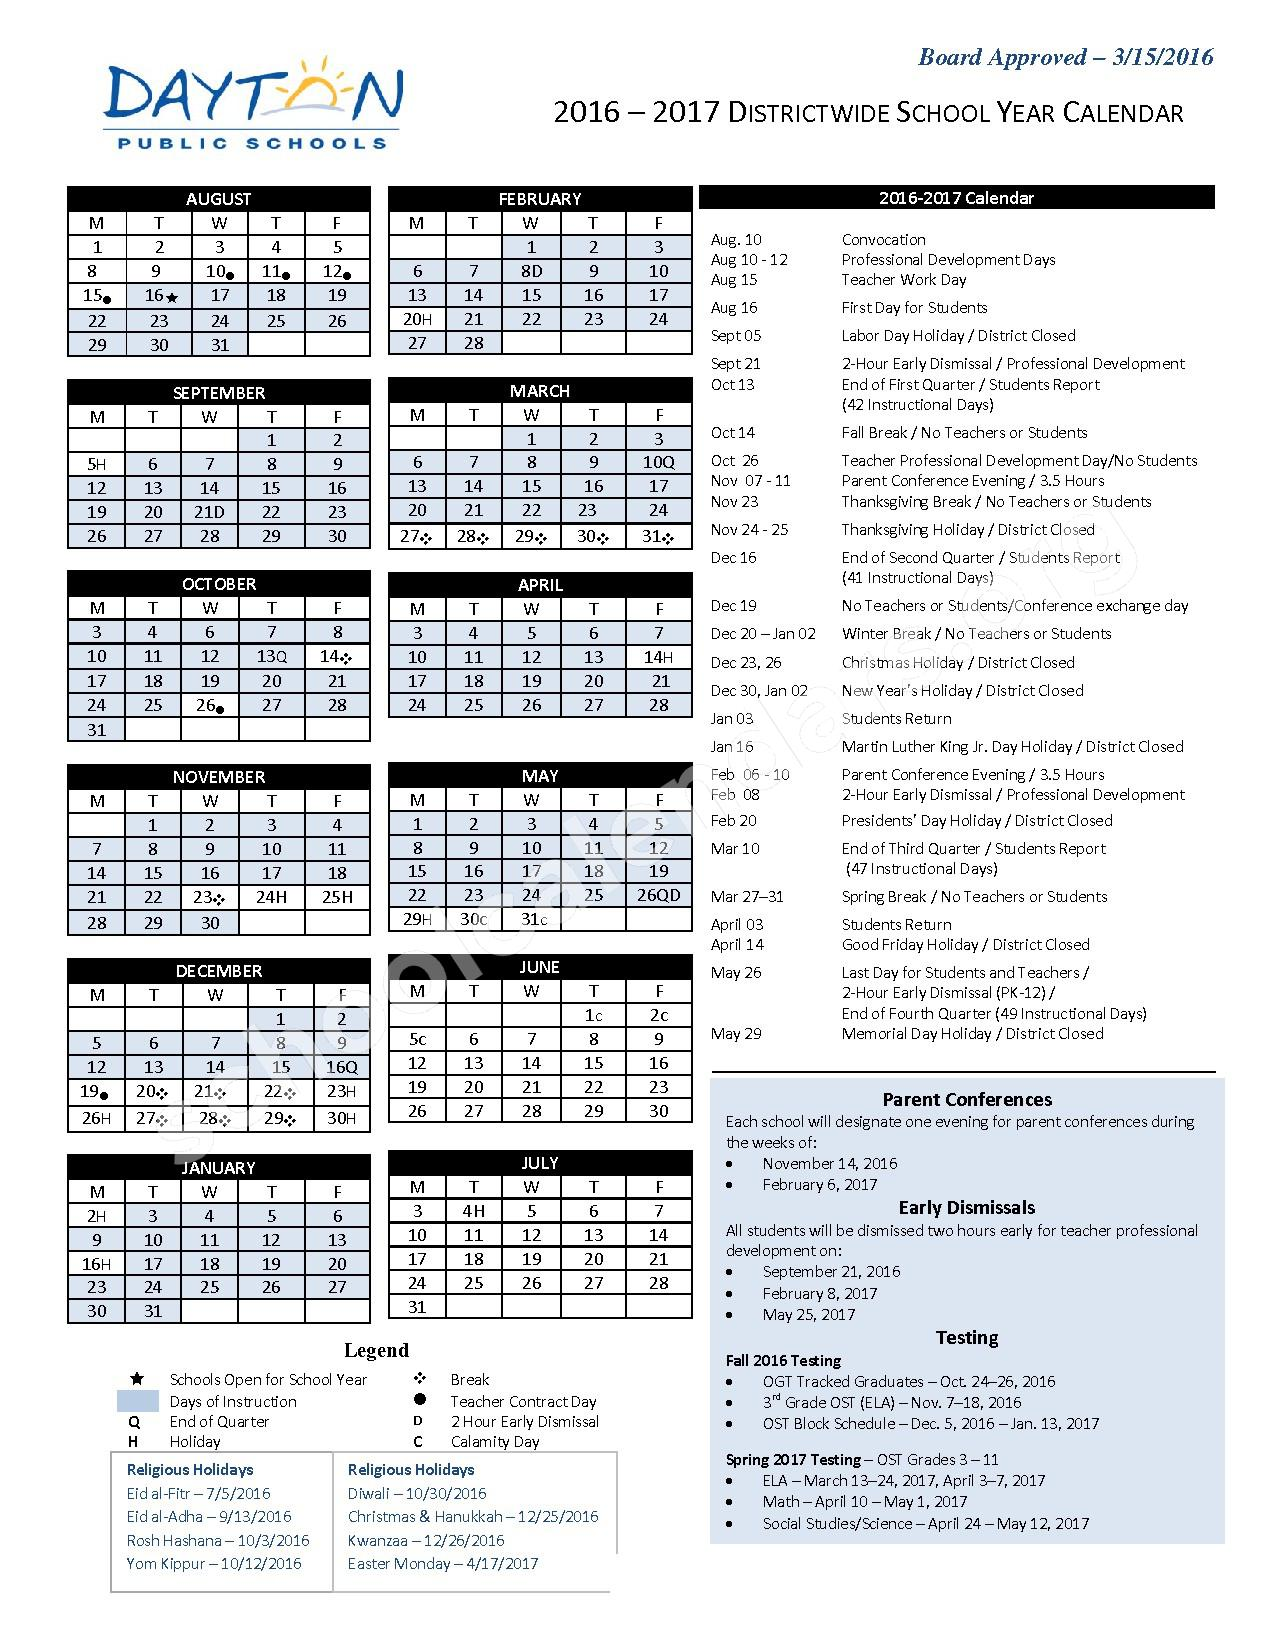 2016 - 2017 DPS Academic Calendar – E. J. Brown PreK-8 School – page 1